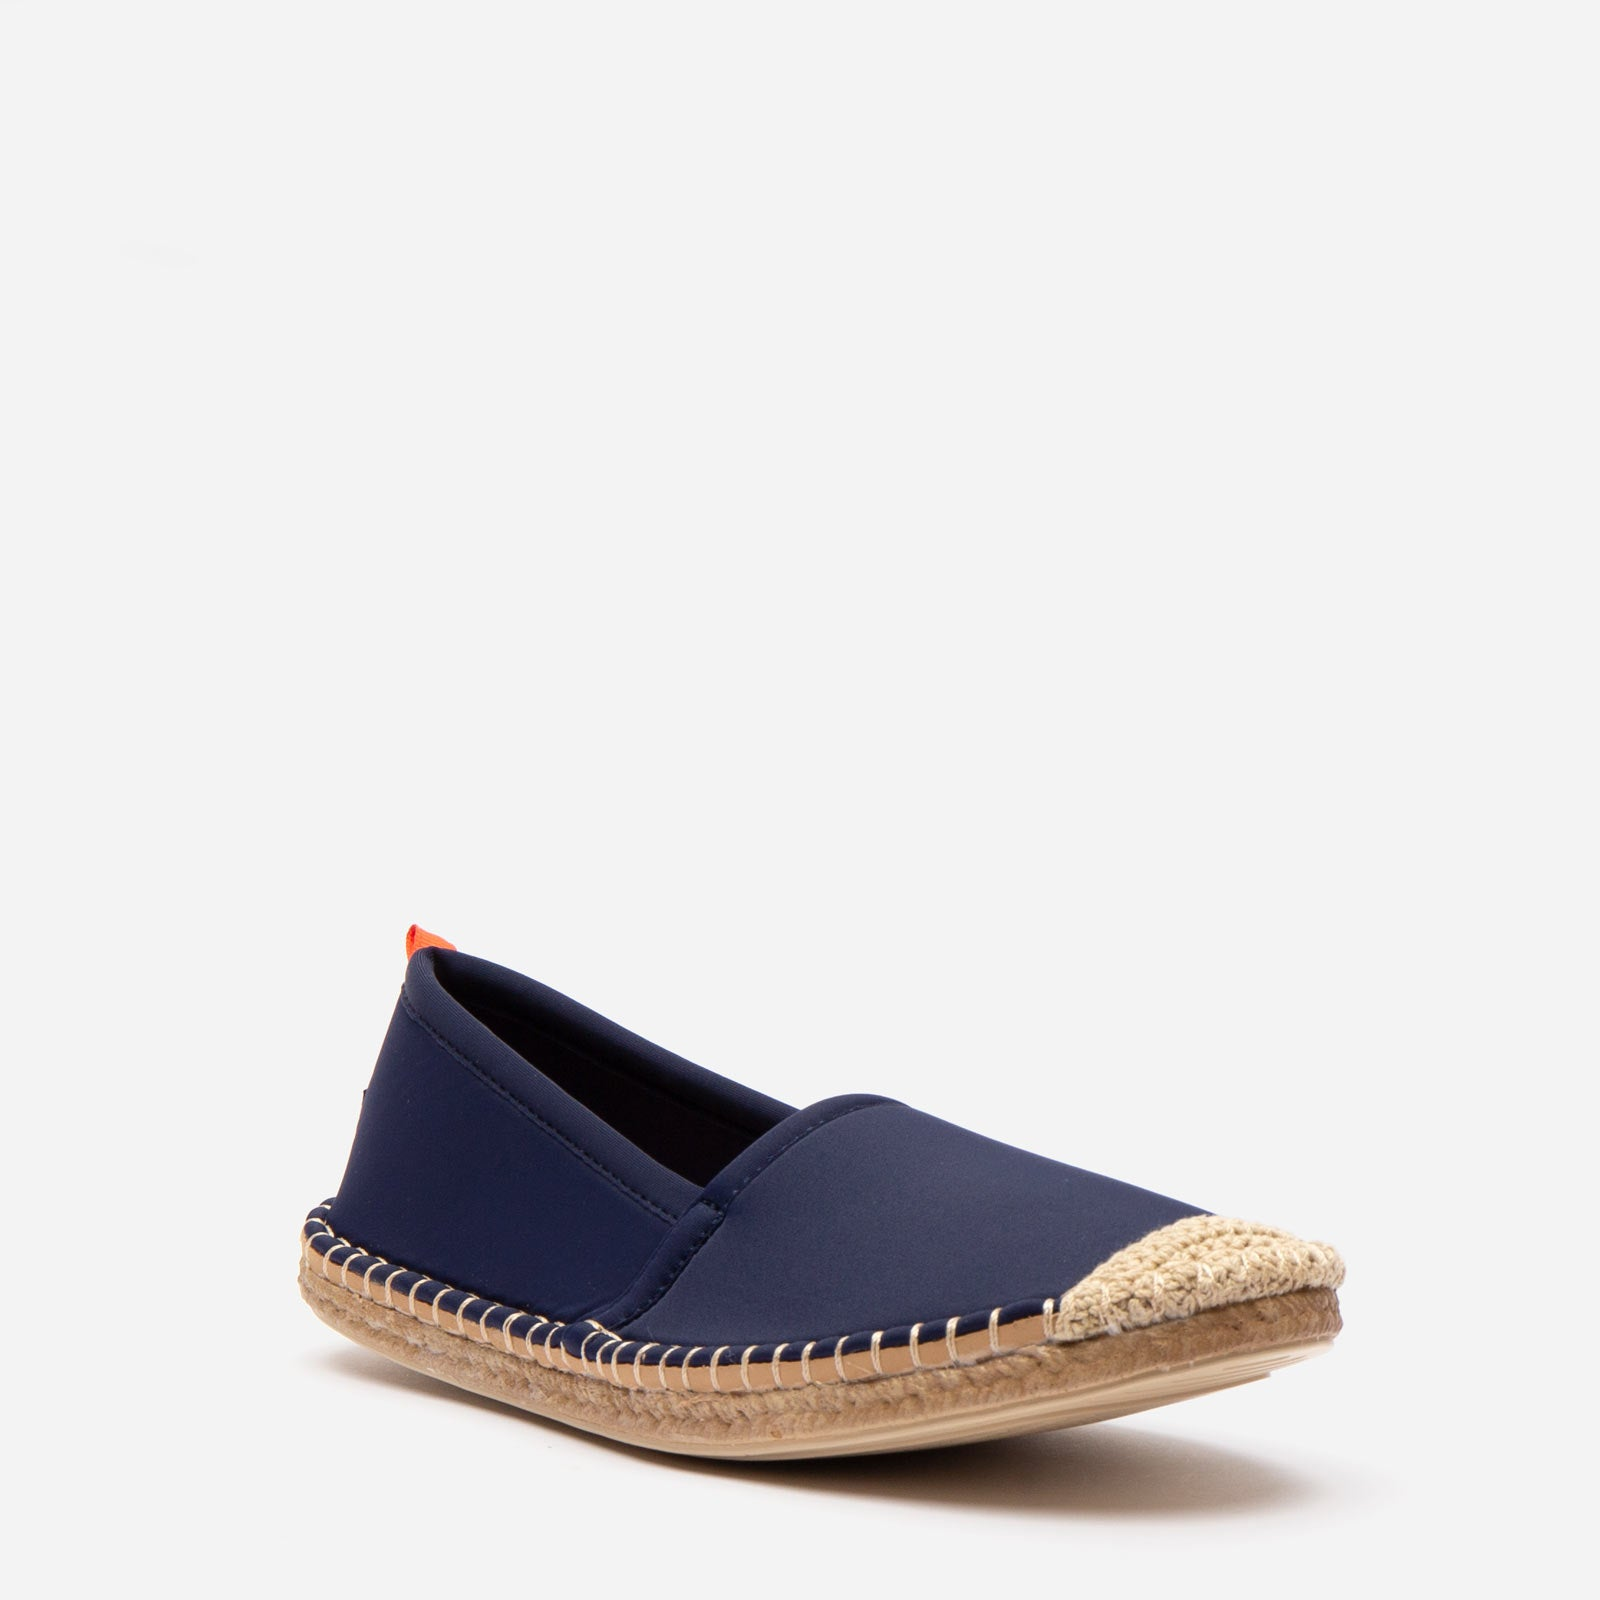 Sea Star Beach Comber Espadrille Navy